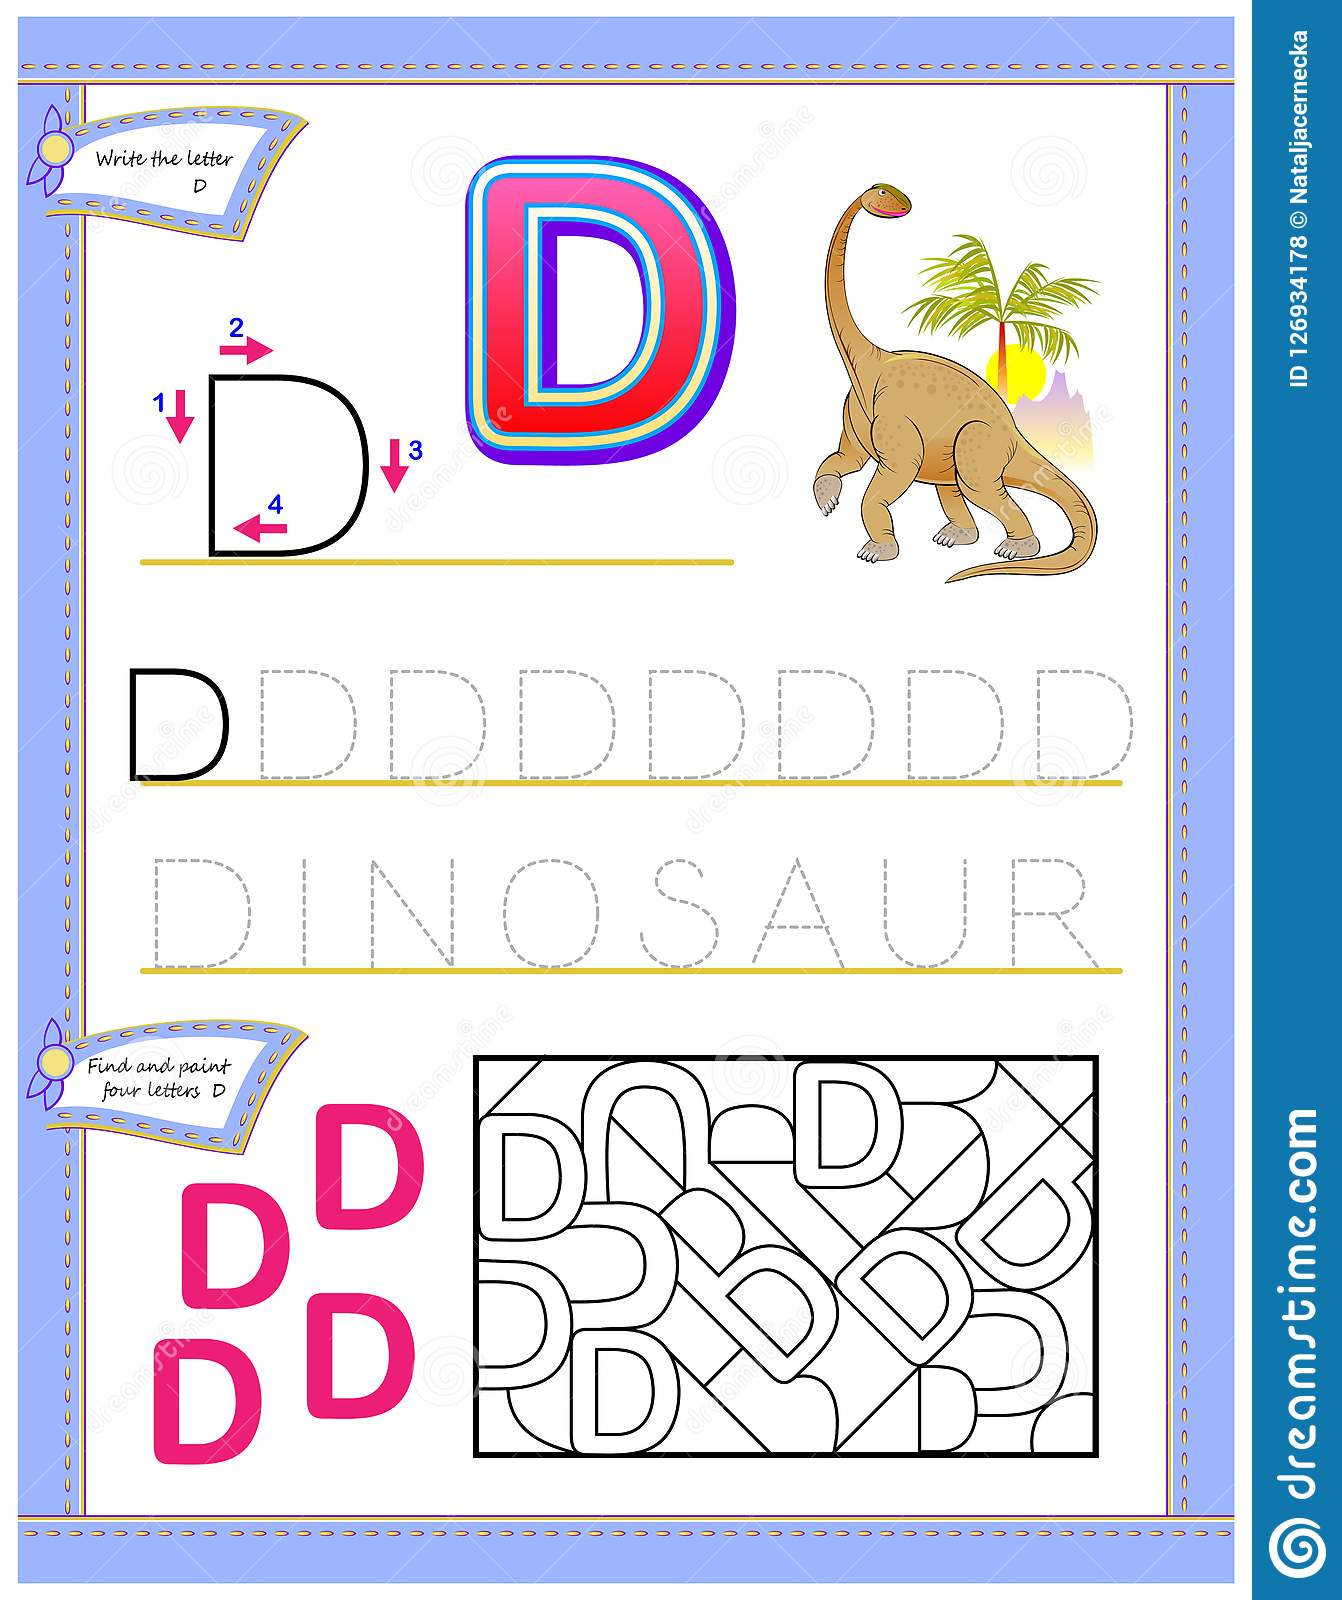 Worksheet For Kids With Letter D For Study English